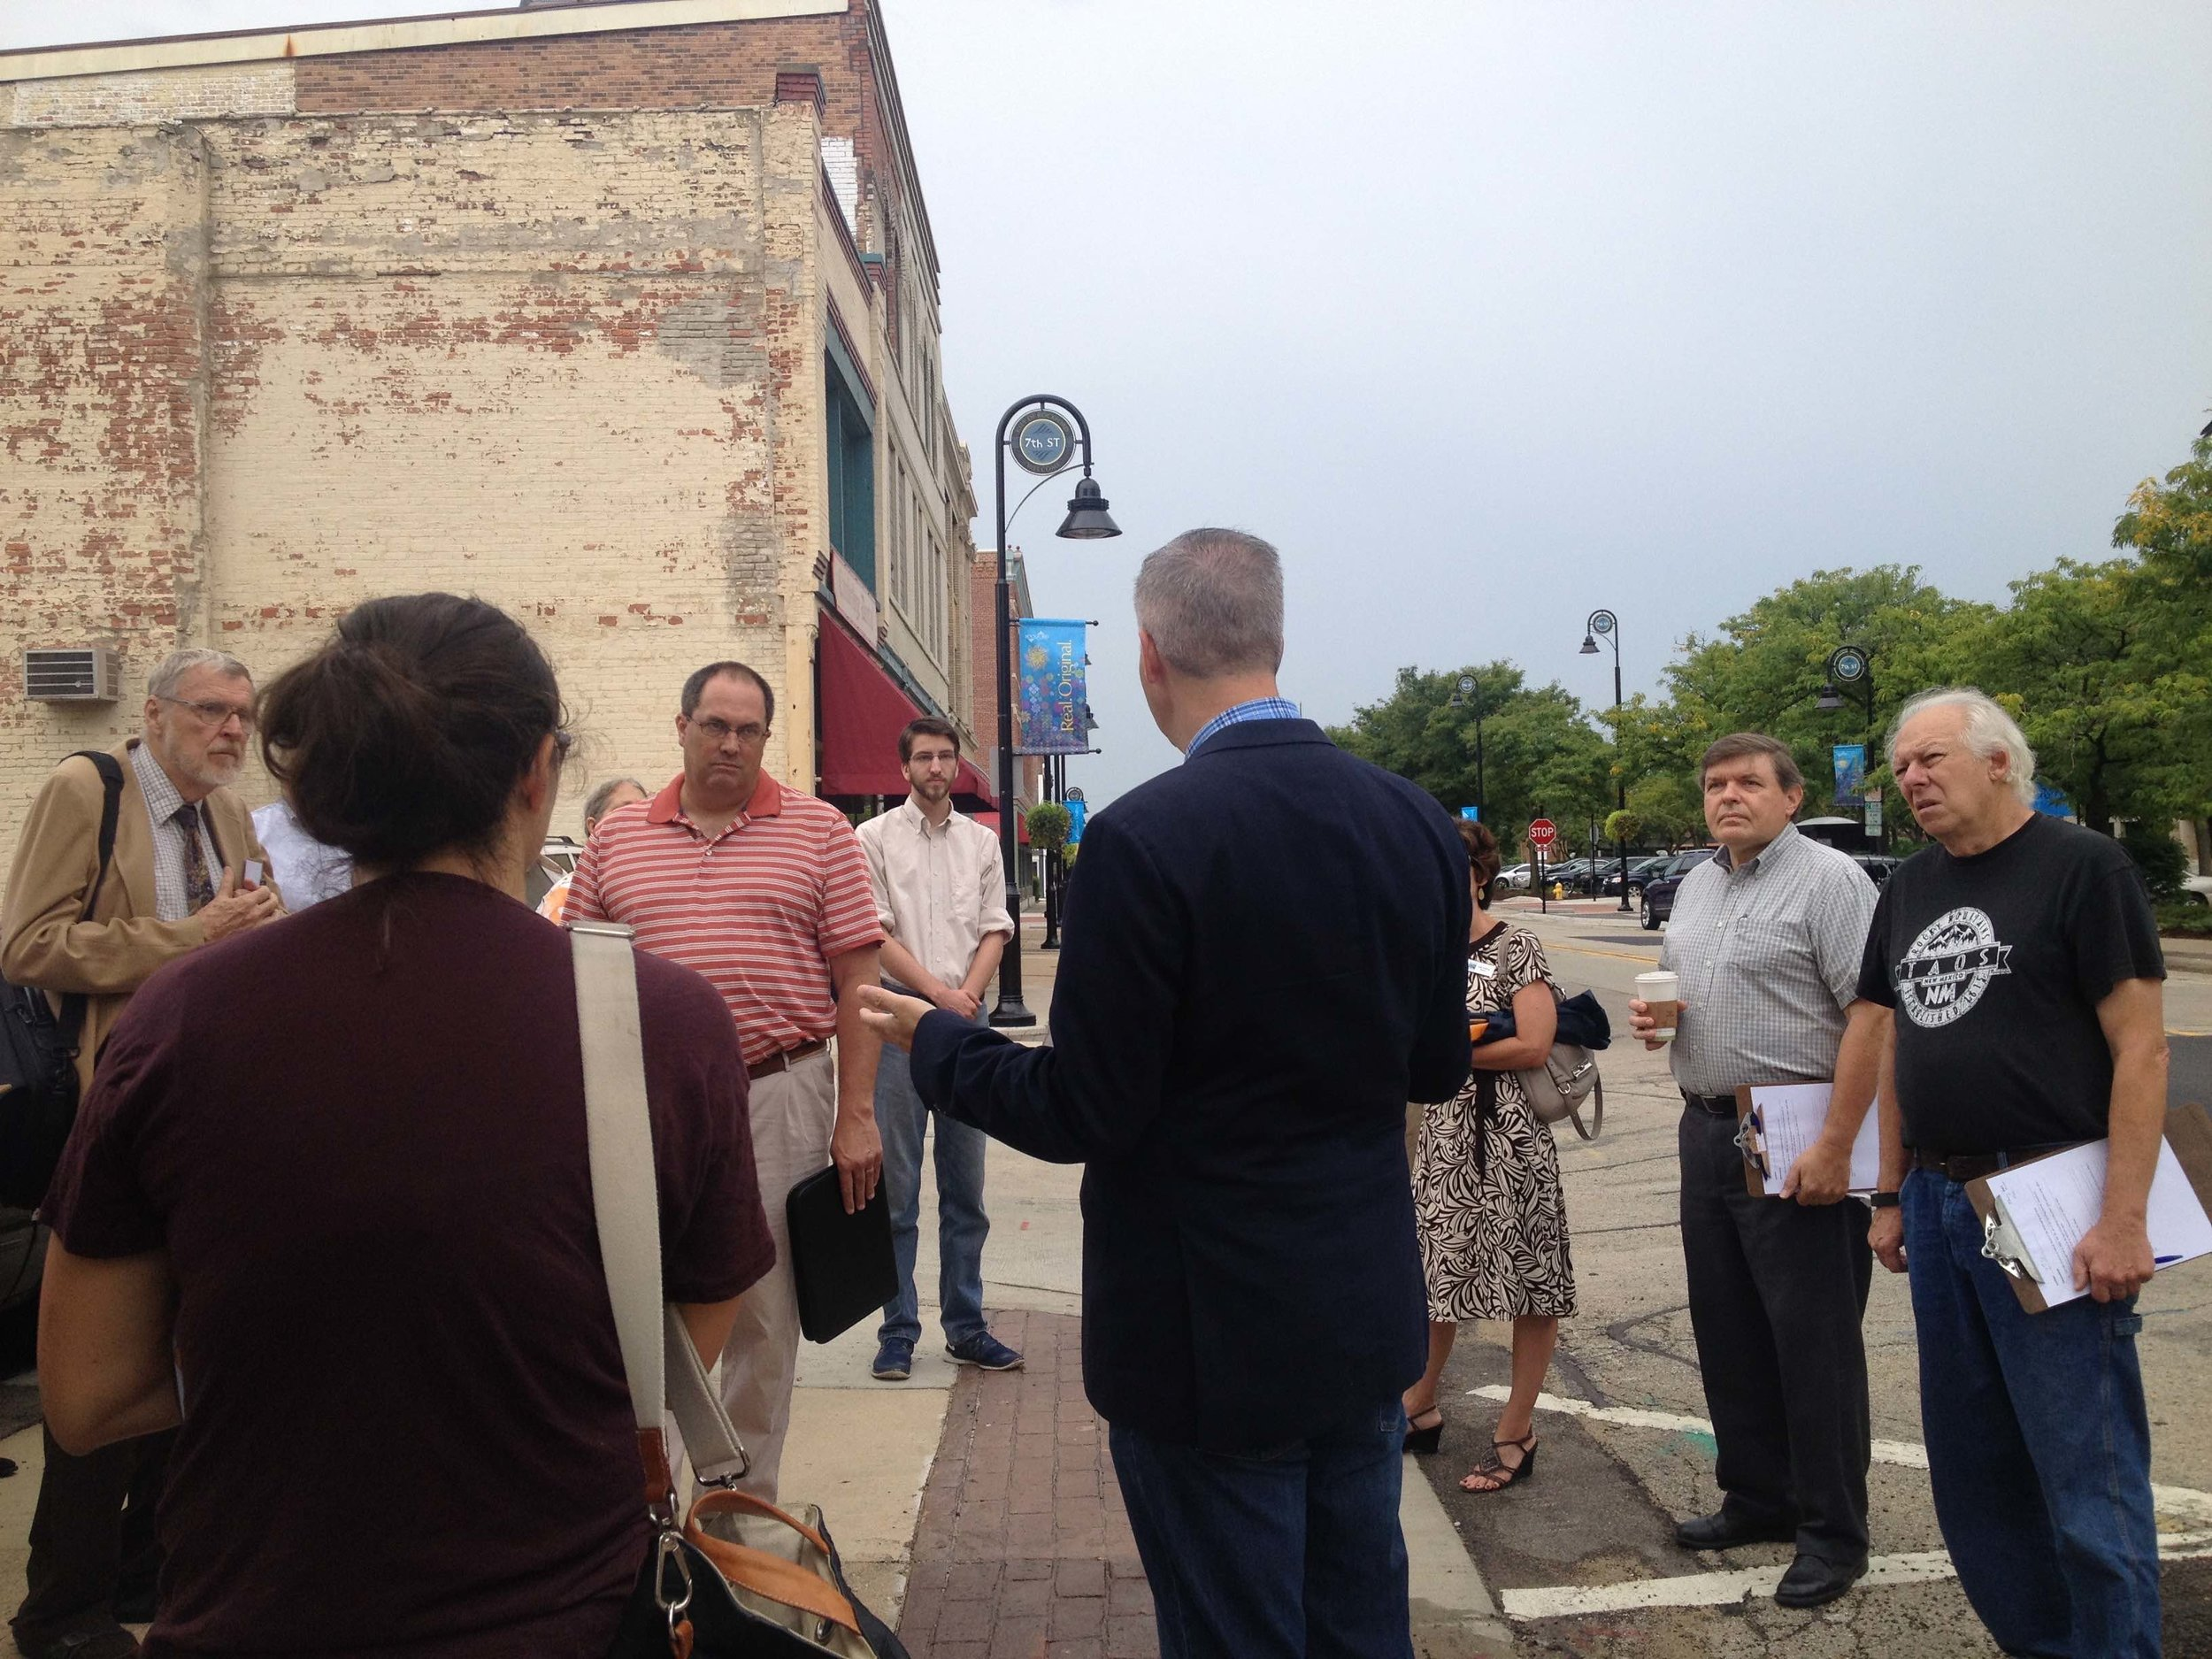 Chuck speaks during a walking tour in Rockford.